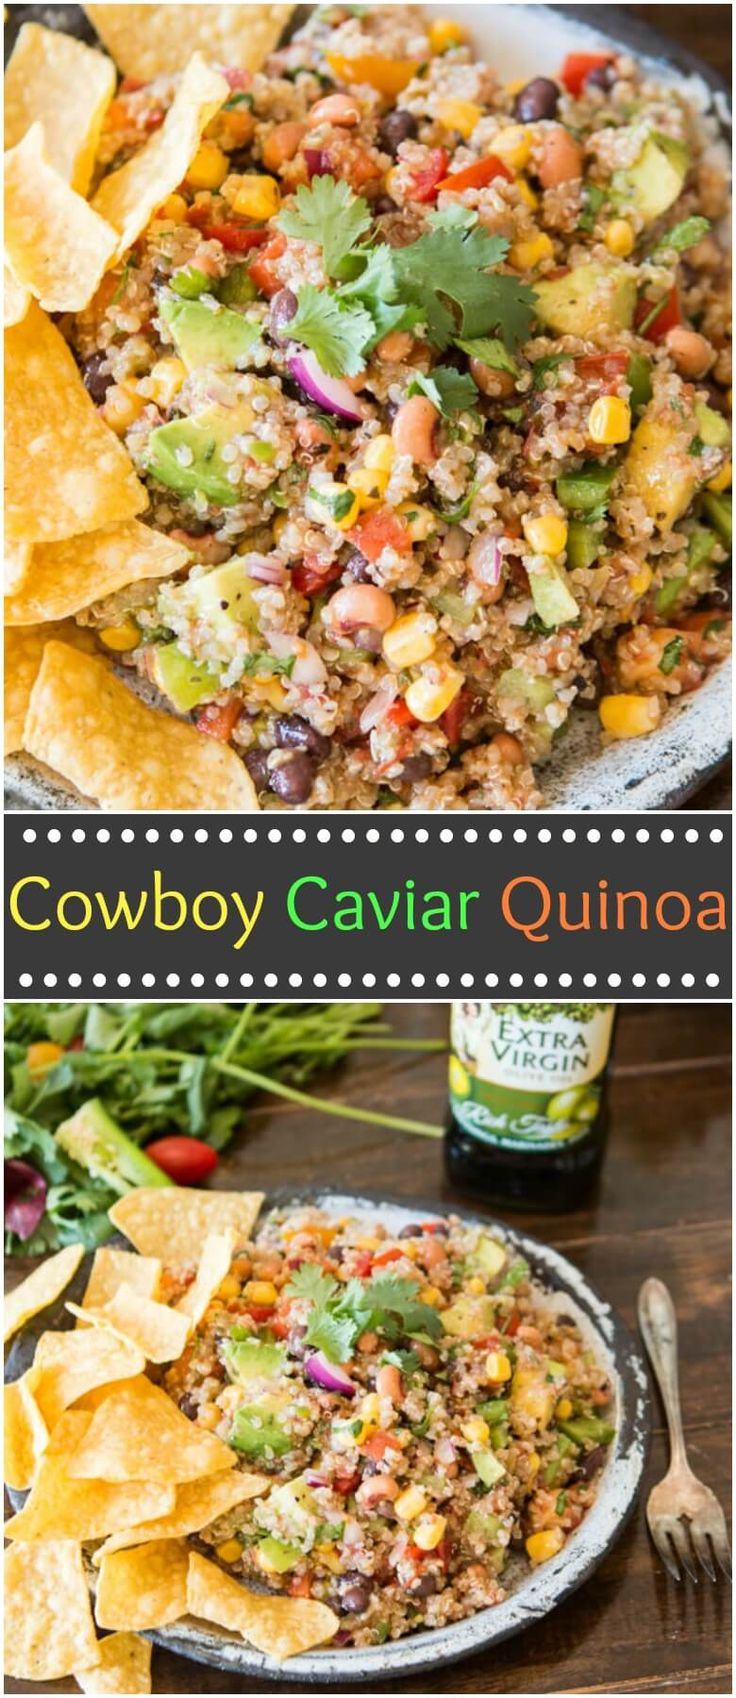 It's some of our favorites in a whole new way. Cowboy caviar quinoa is a mashup of the classic cowboy caviar salsa and a healthy quinoa side. ohsweetbasil.com